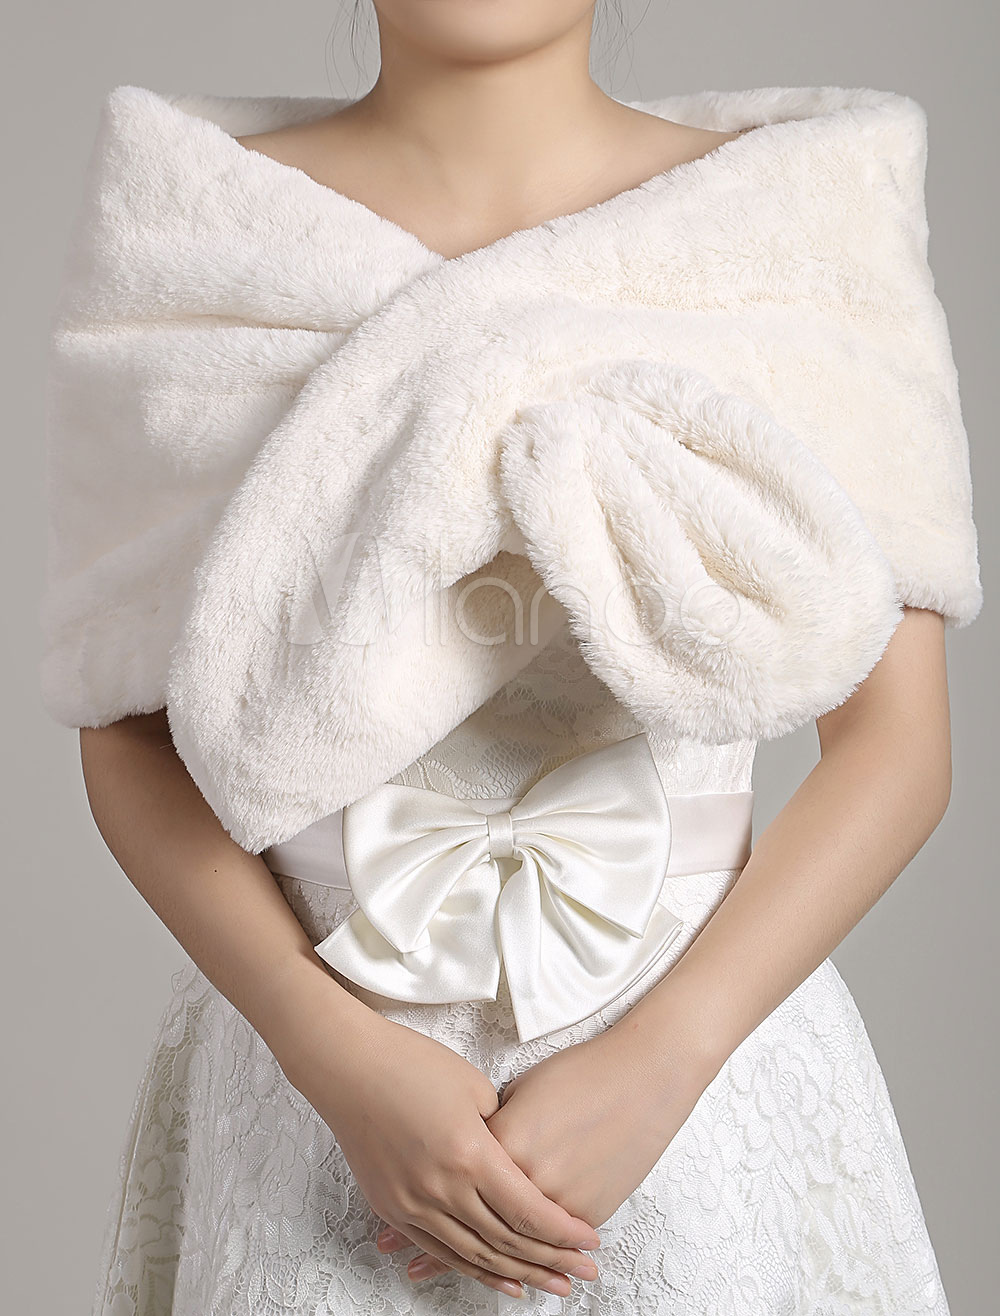 Buy Faux Fur Stole Wedding Shawl Open Front Ivory Fluffy Bridal Wrap Shrug for $24.29 in Milanoo store